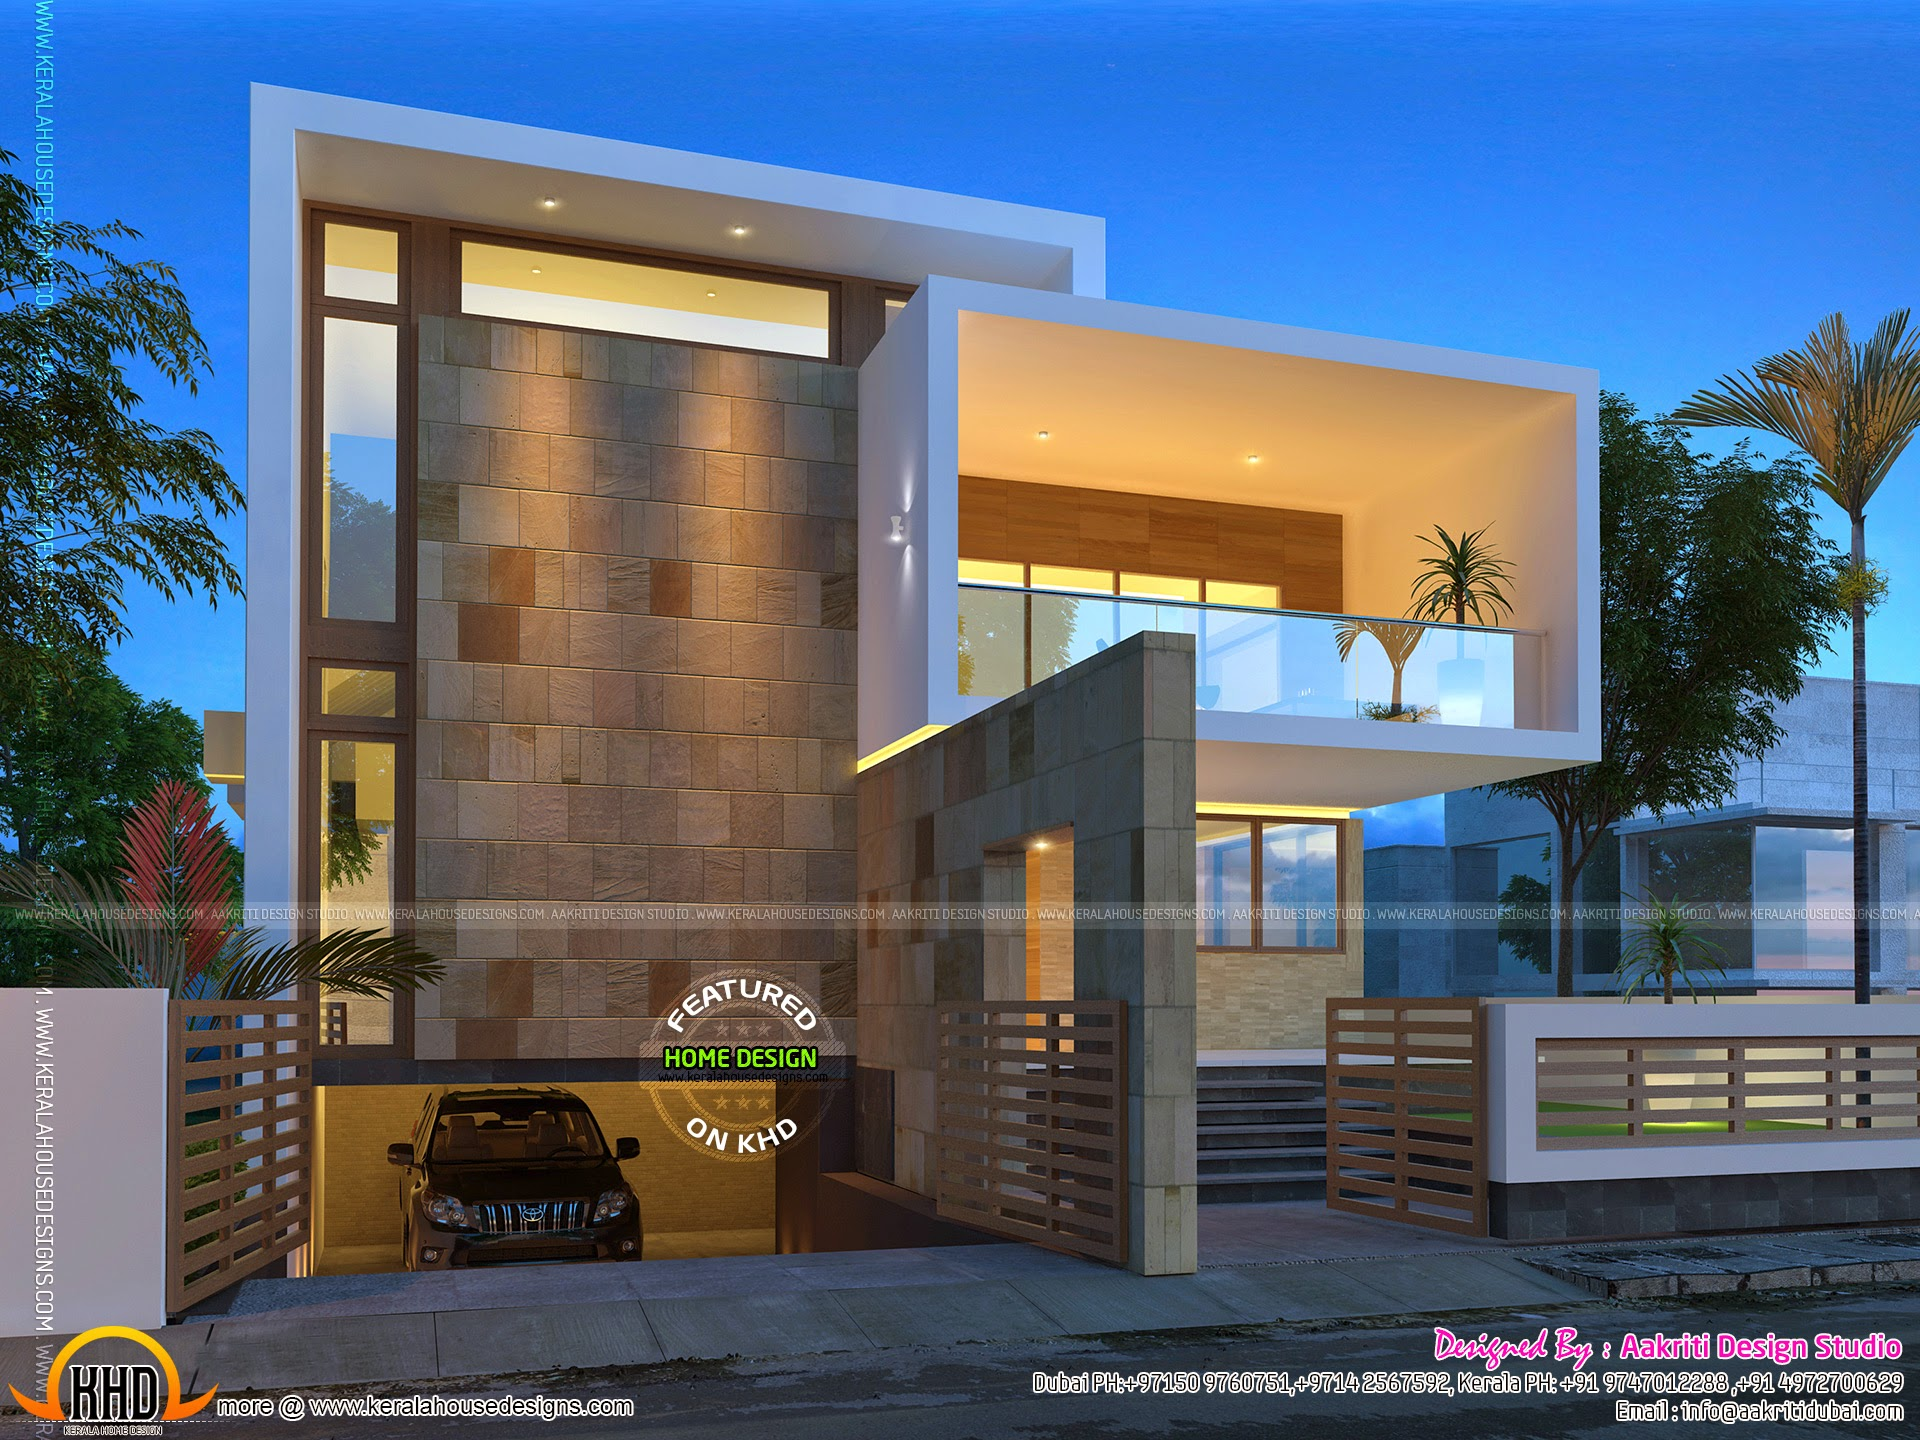 Beautiful contemporary home night views kerala home design and floor plans for Mordern house